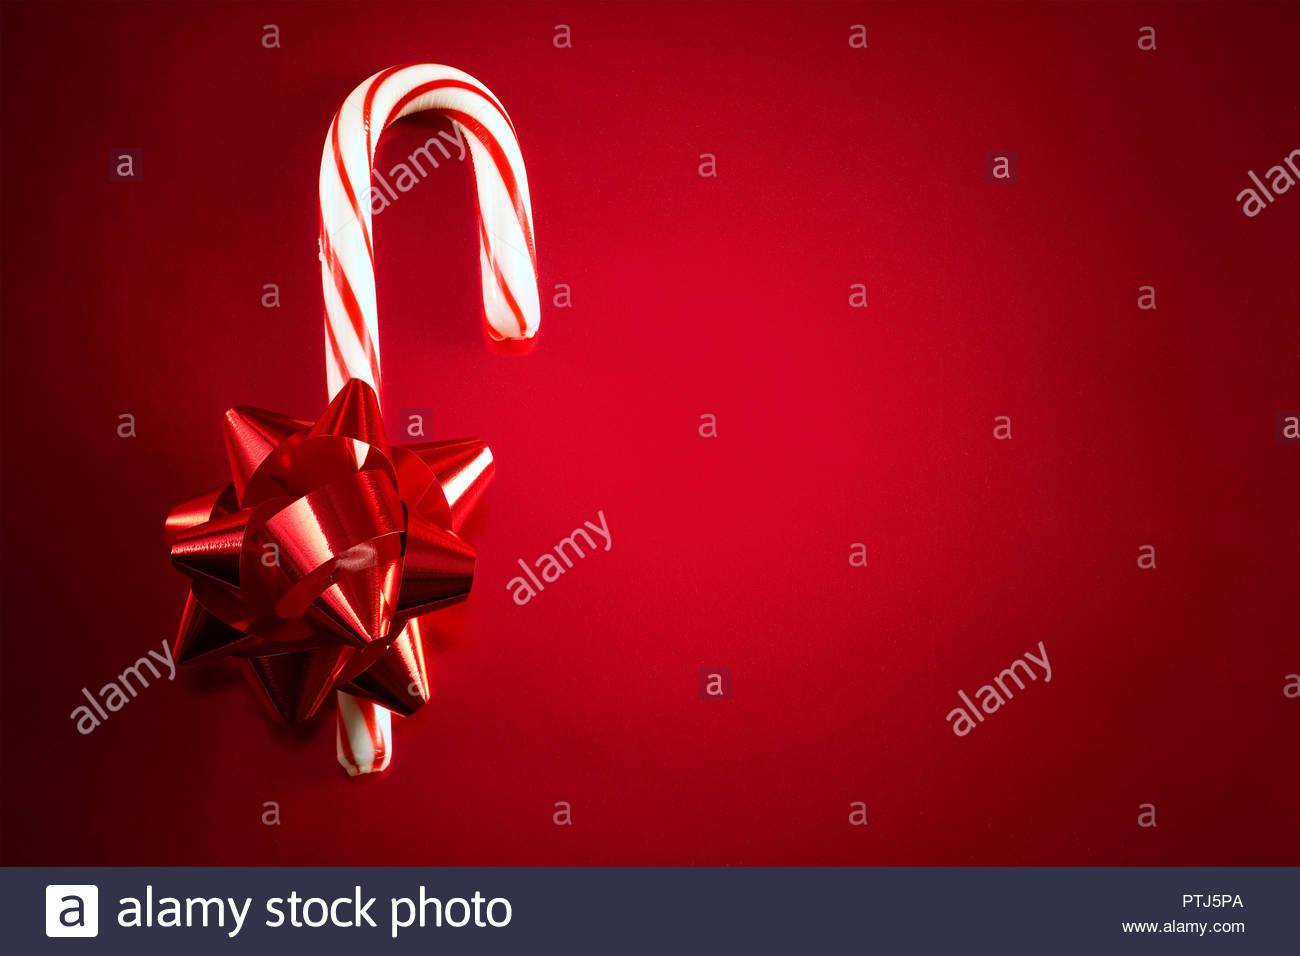 red foil bow and candy cane on red background for christmas themed